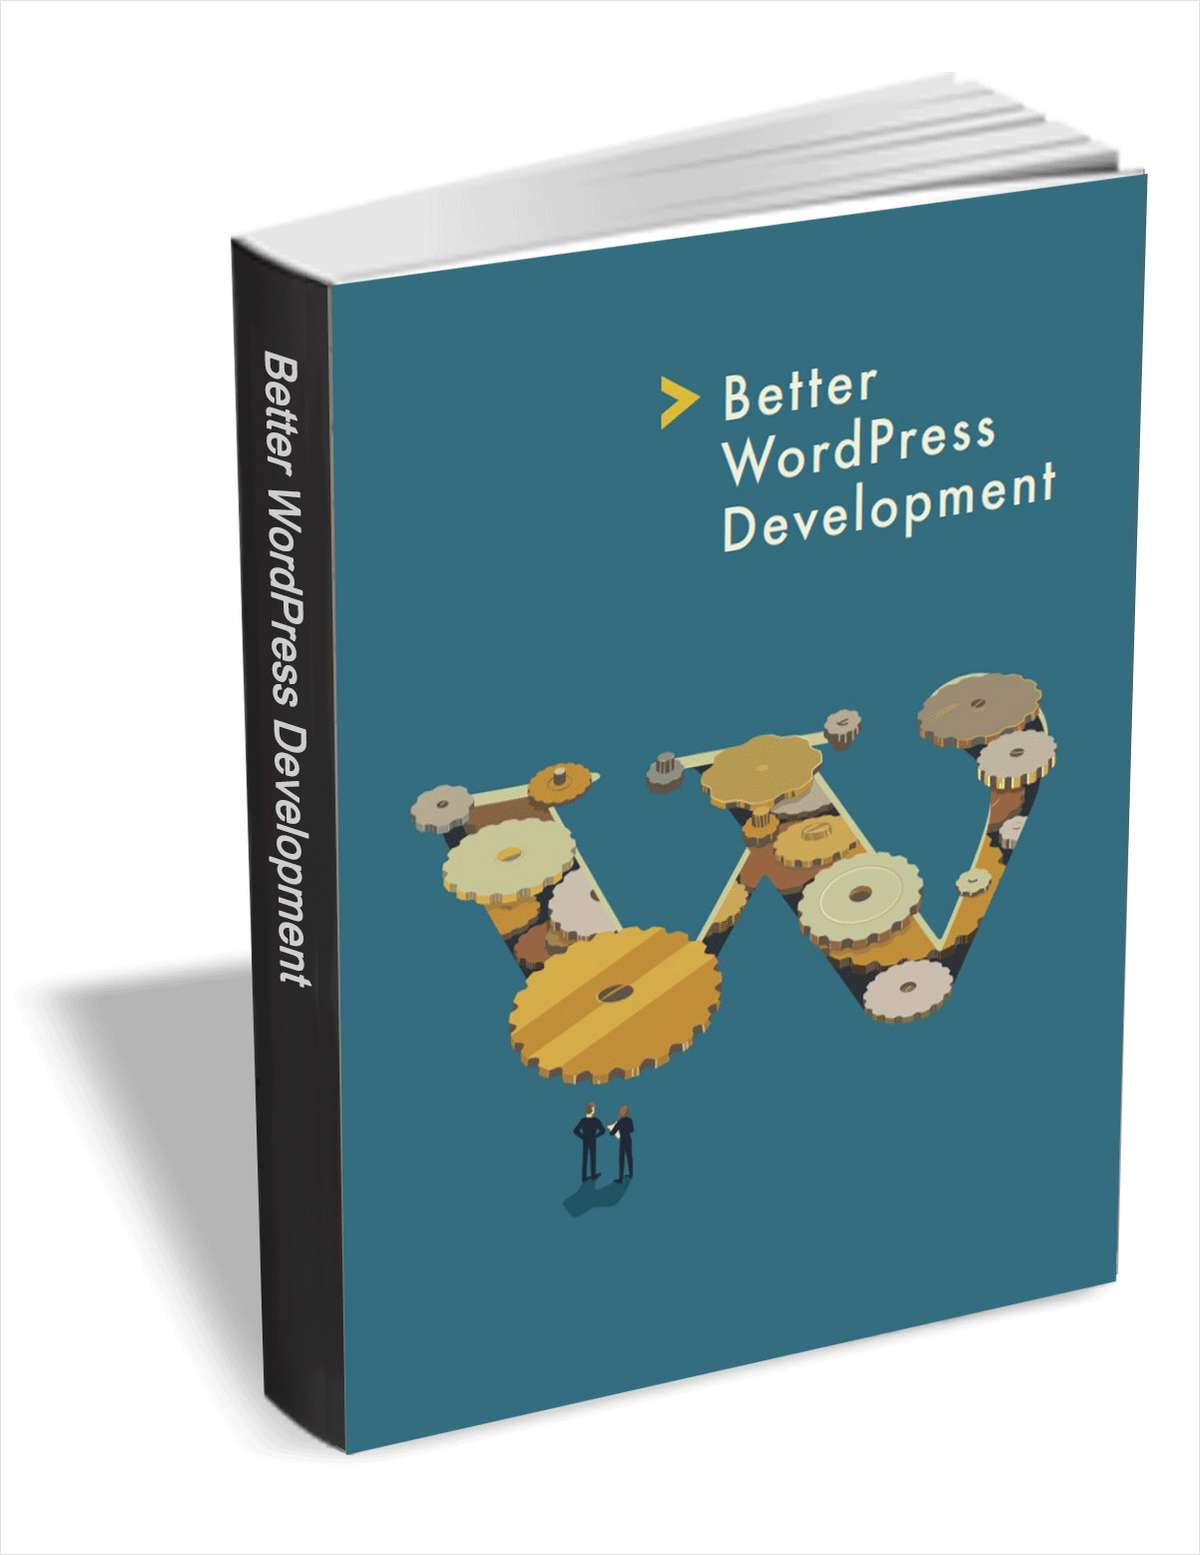 Better WordPress Development ($29 Value) FREE For a Limited Time